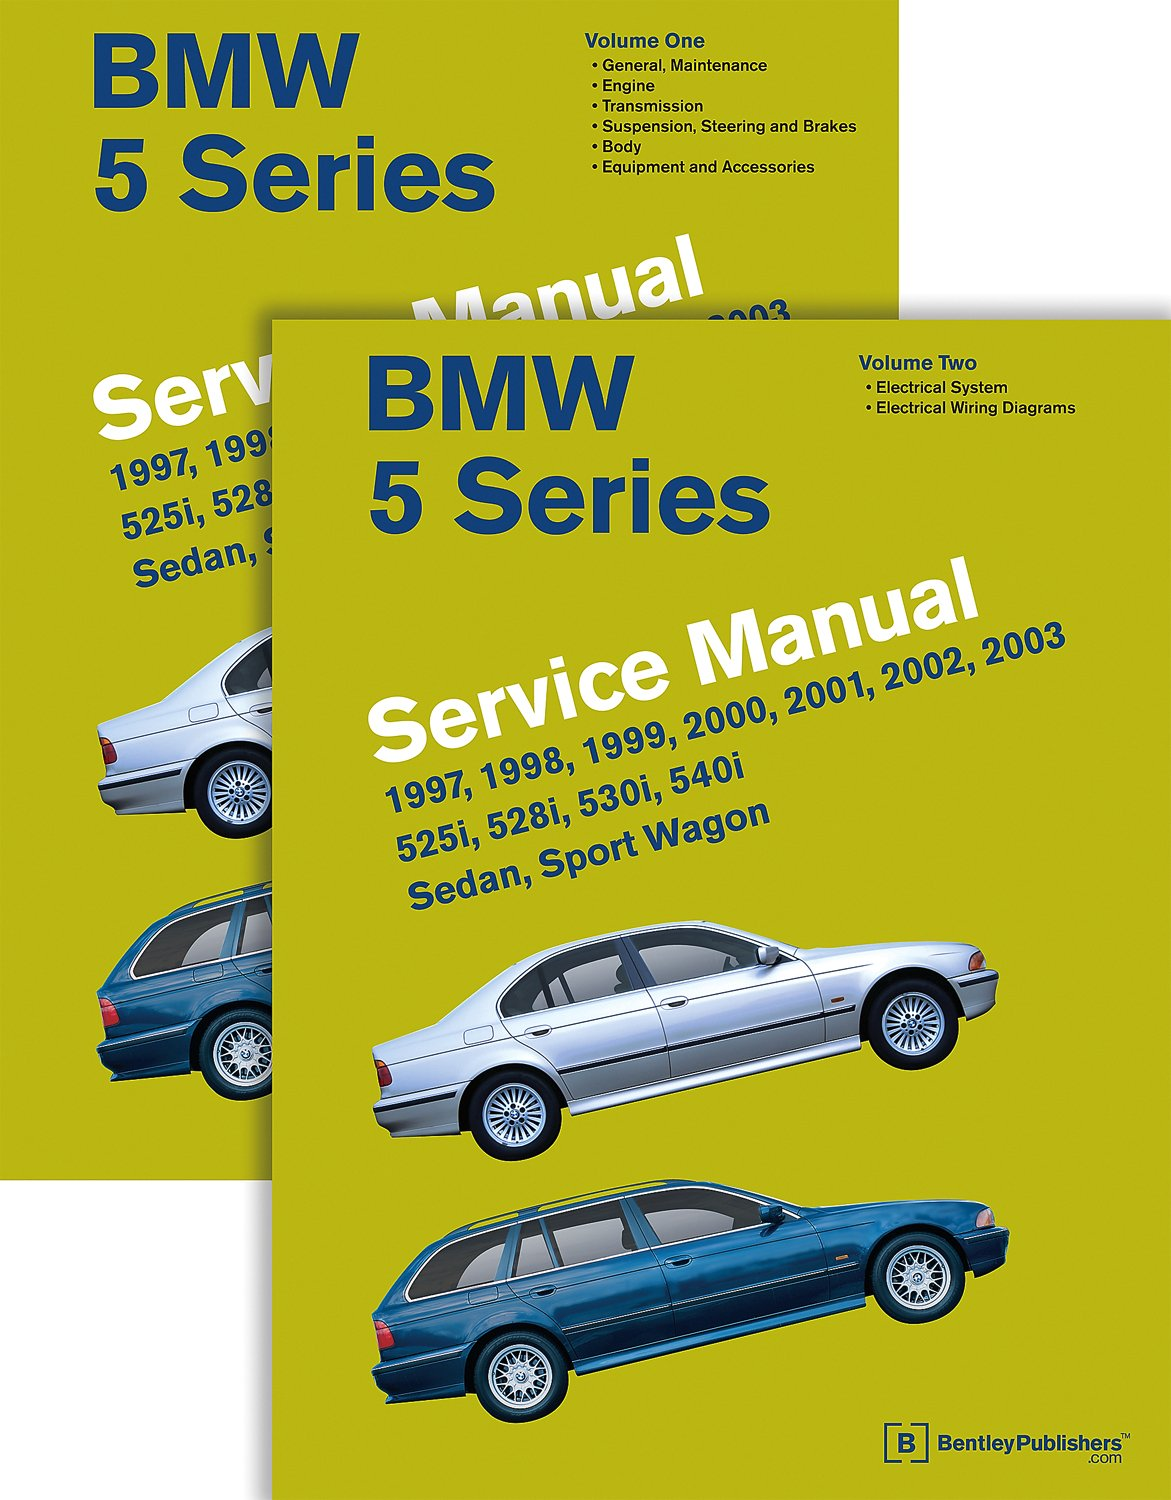 Bmw 5 series 2 vol e39 service manual 1997 1998 1999 2000 2001 bmw 5 series 2 vol e39 service manual 1997 1998 1999 2000 2001 2002 2003 525i 528i 530i 540i sedan sport wagon bentley publishers asfbconference2016 Gallery